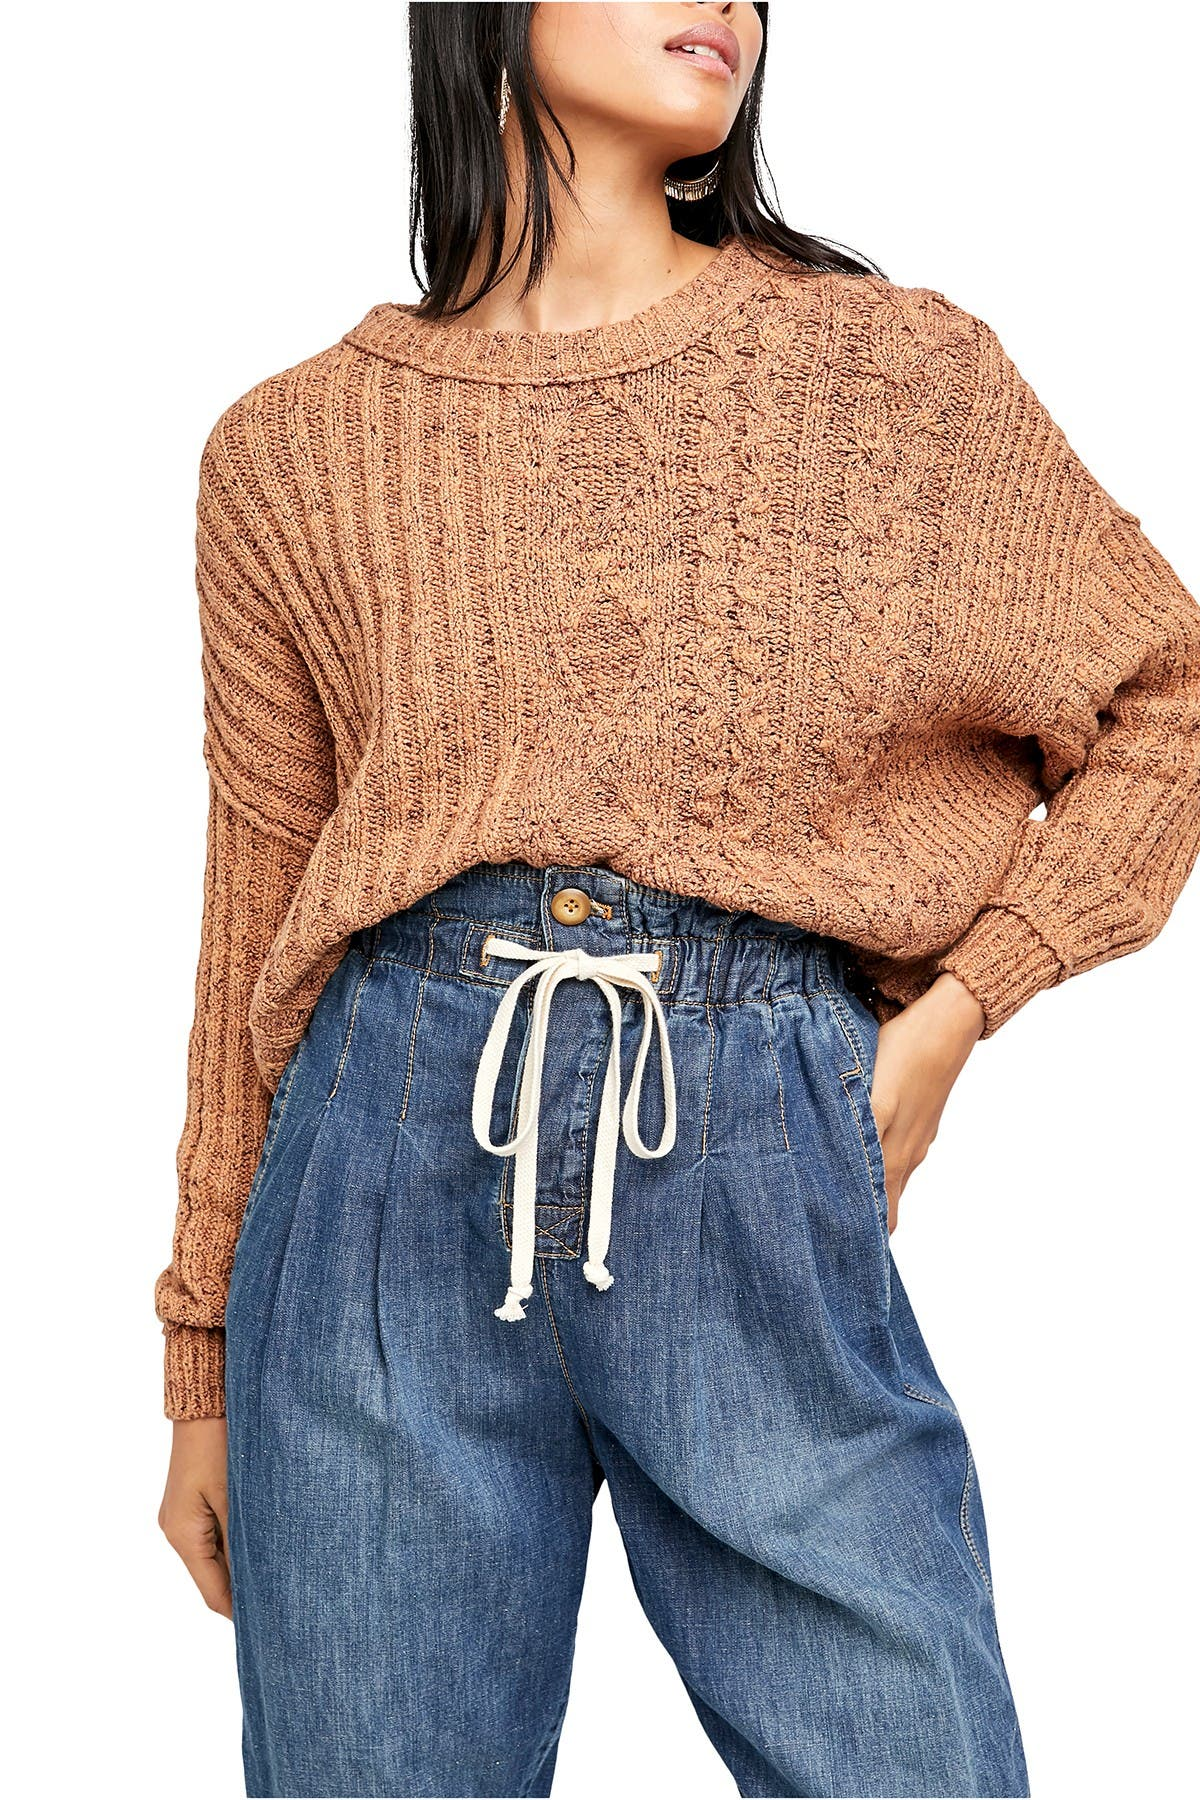 Image of Free People On Your Side Pullover